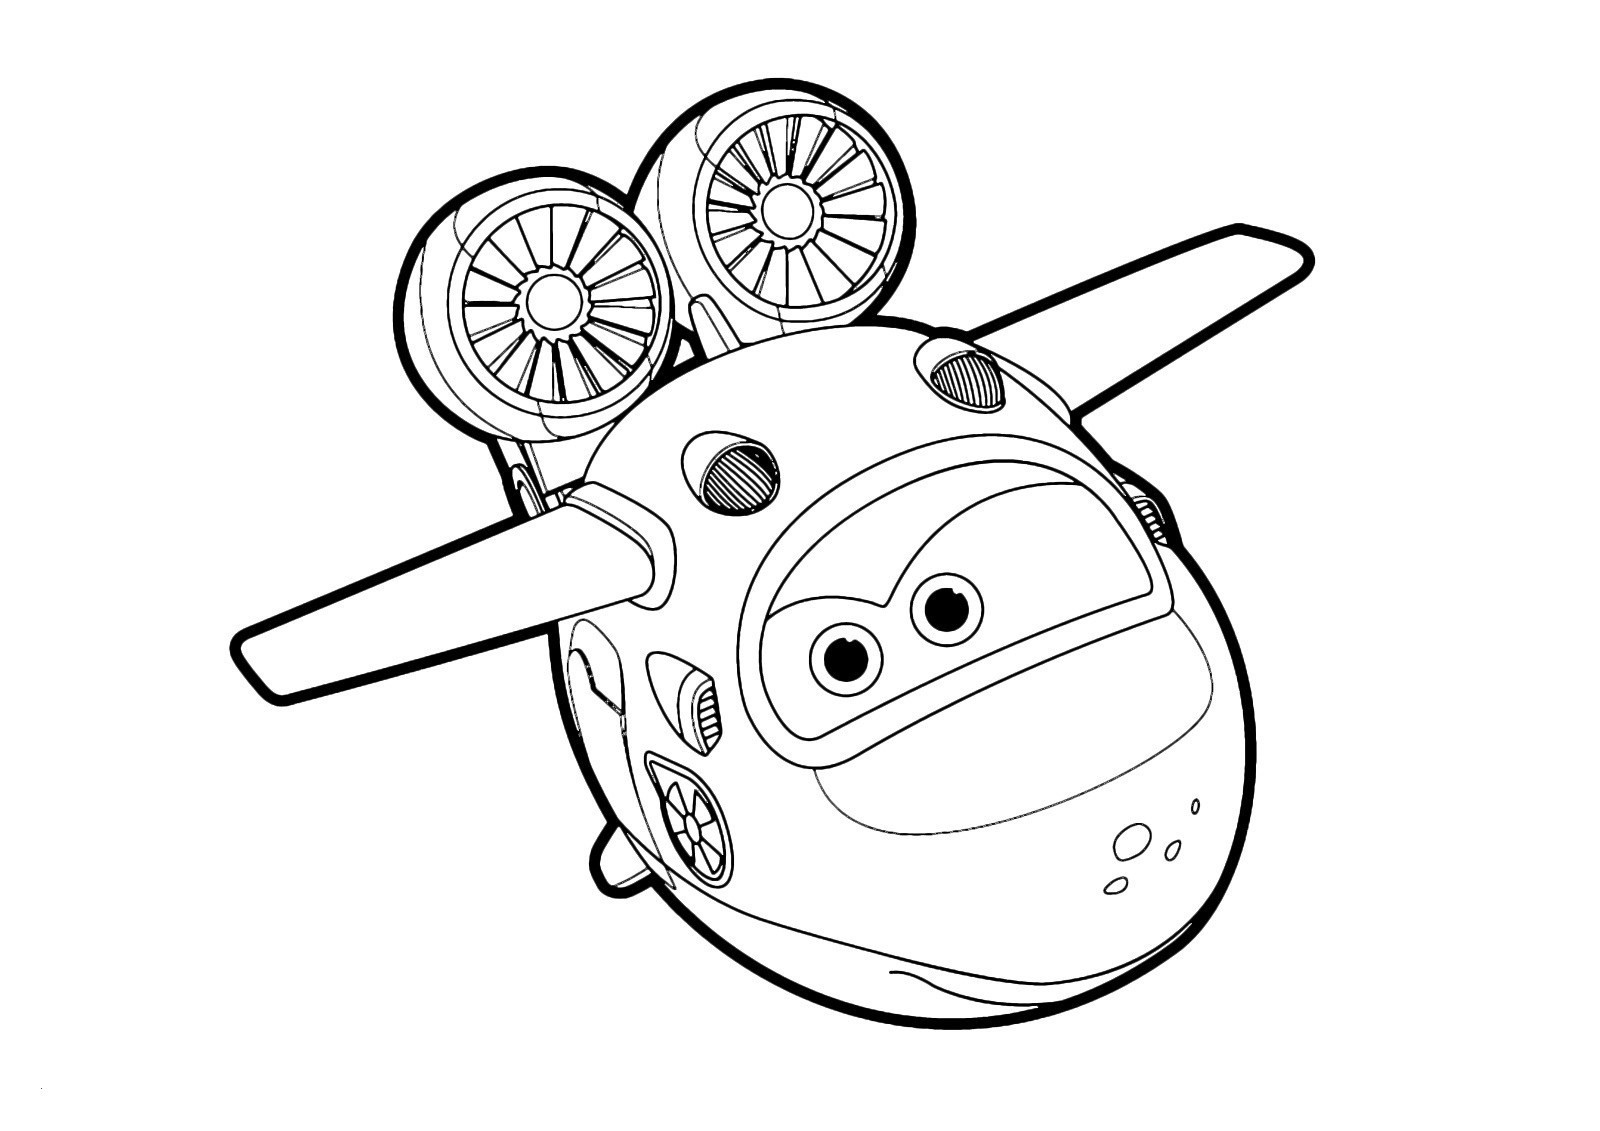 Super Wings Malvorlage Neu Ausmalbilder Super Wings Frisch Fresh Super Wings Coloring Pages Das Bild